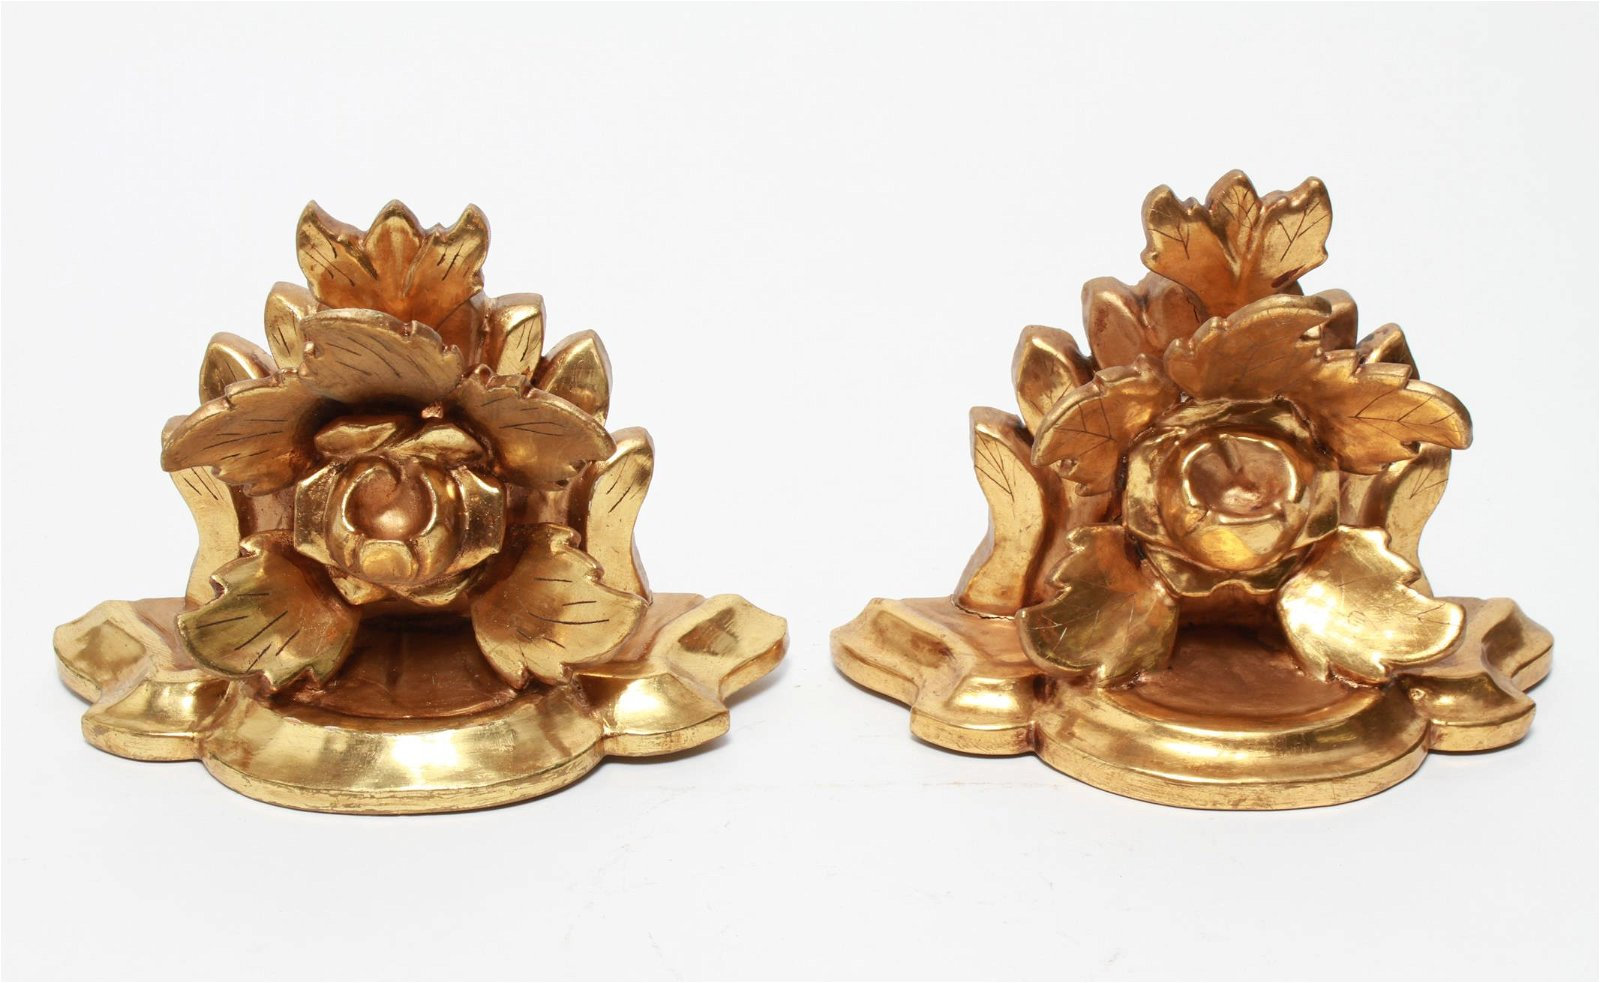 Italian Rococo Manner Giltwood Wall Brackets, Pair